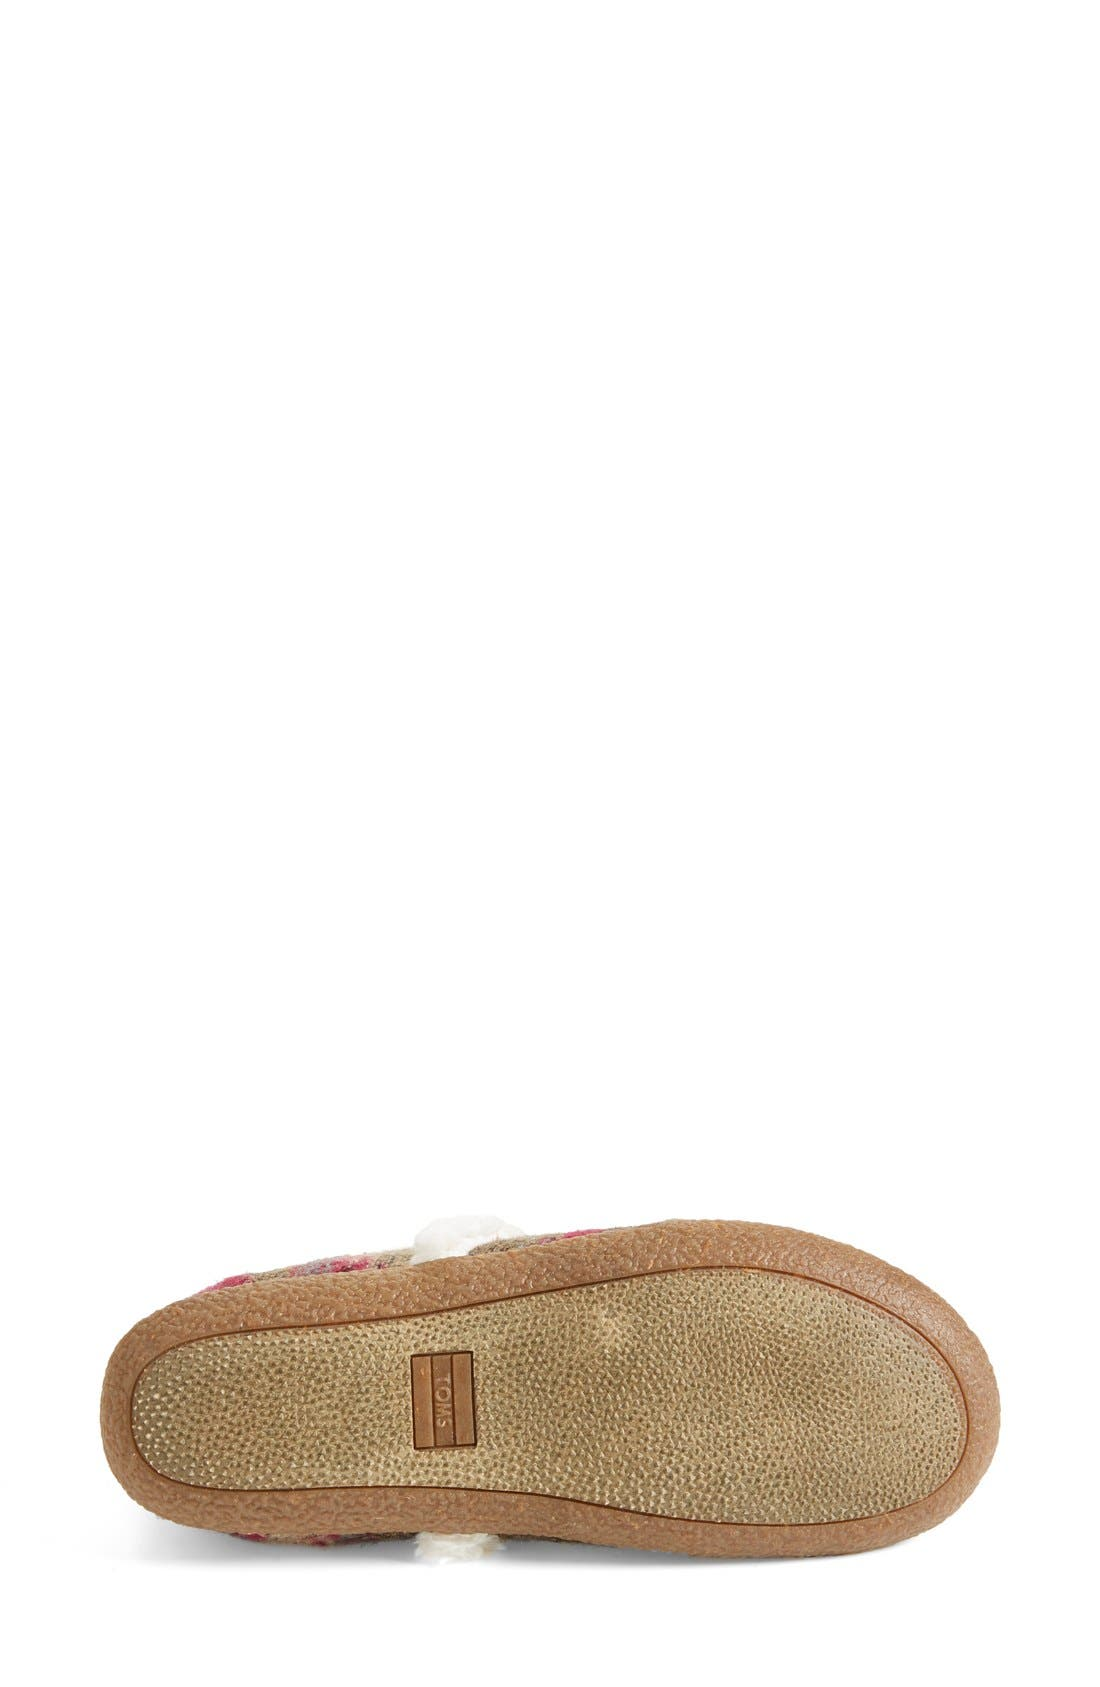 TOMS,                             'Classic - Wool' Slippers,                             Alternate thumbnail 3, color,                             050